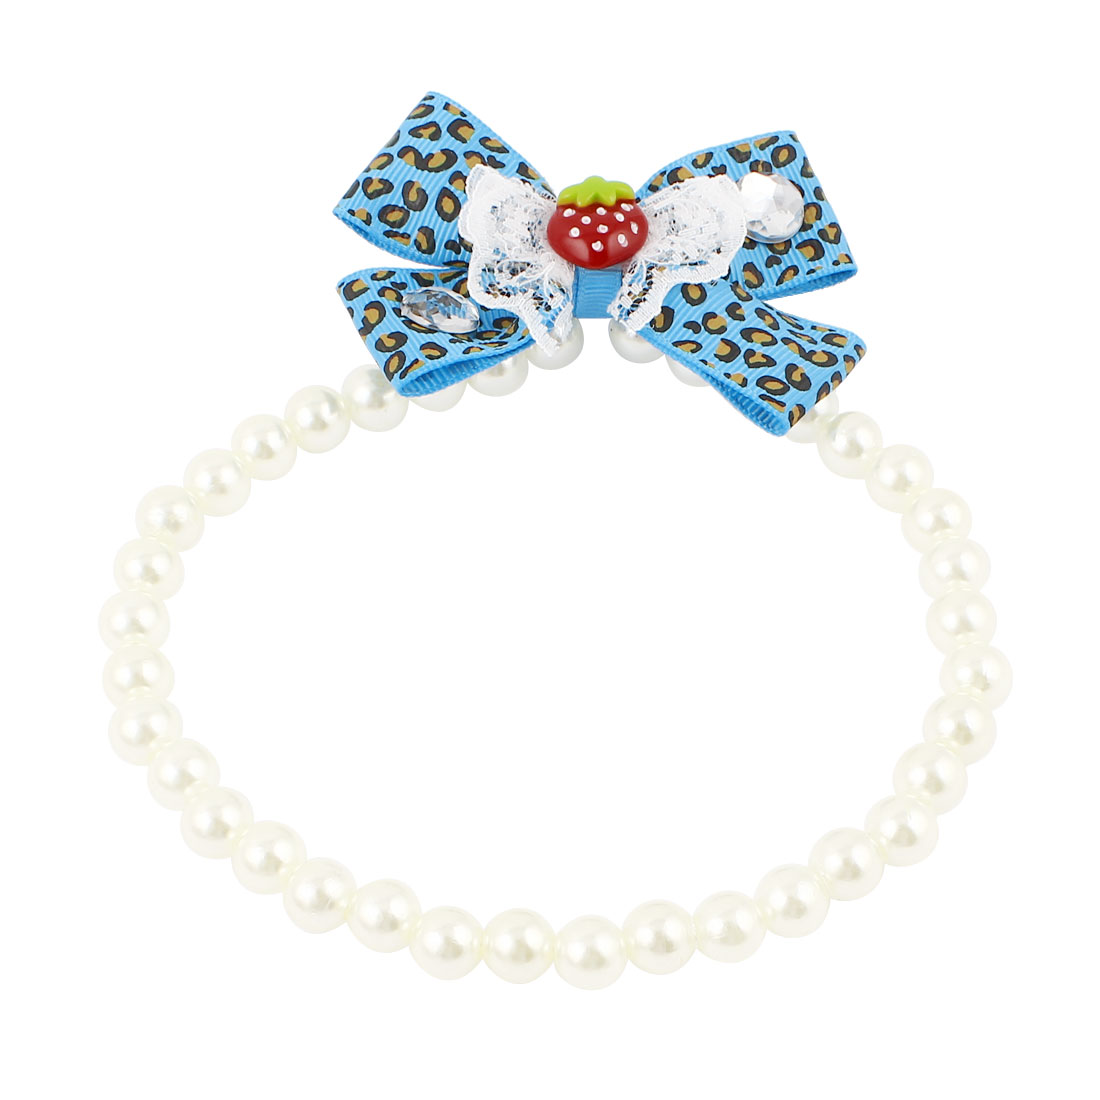 Lace Bowknot Accent Pet Dog Plastic Beads Imitation Pearls Collar Necklace White Blue L